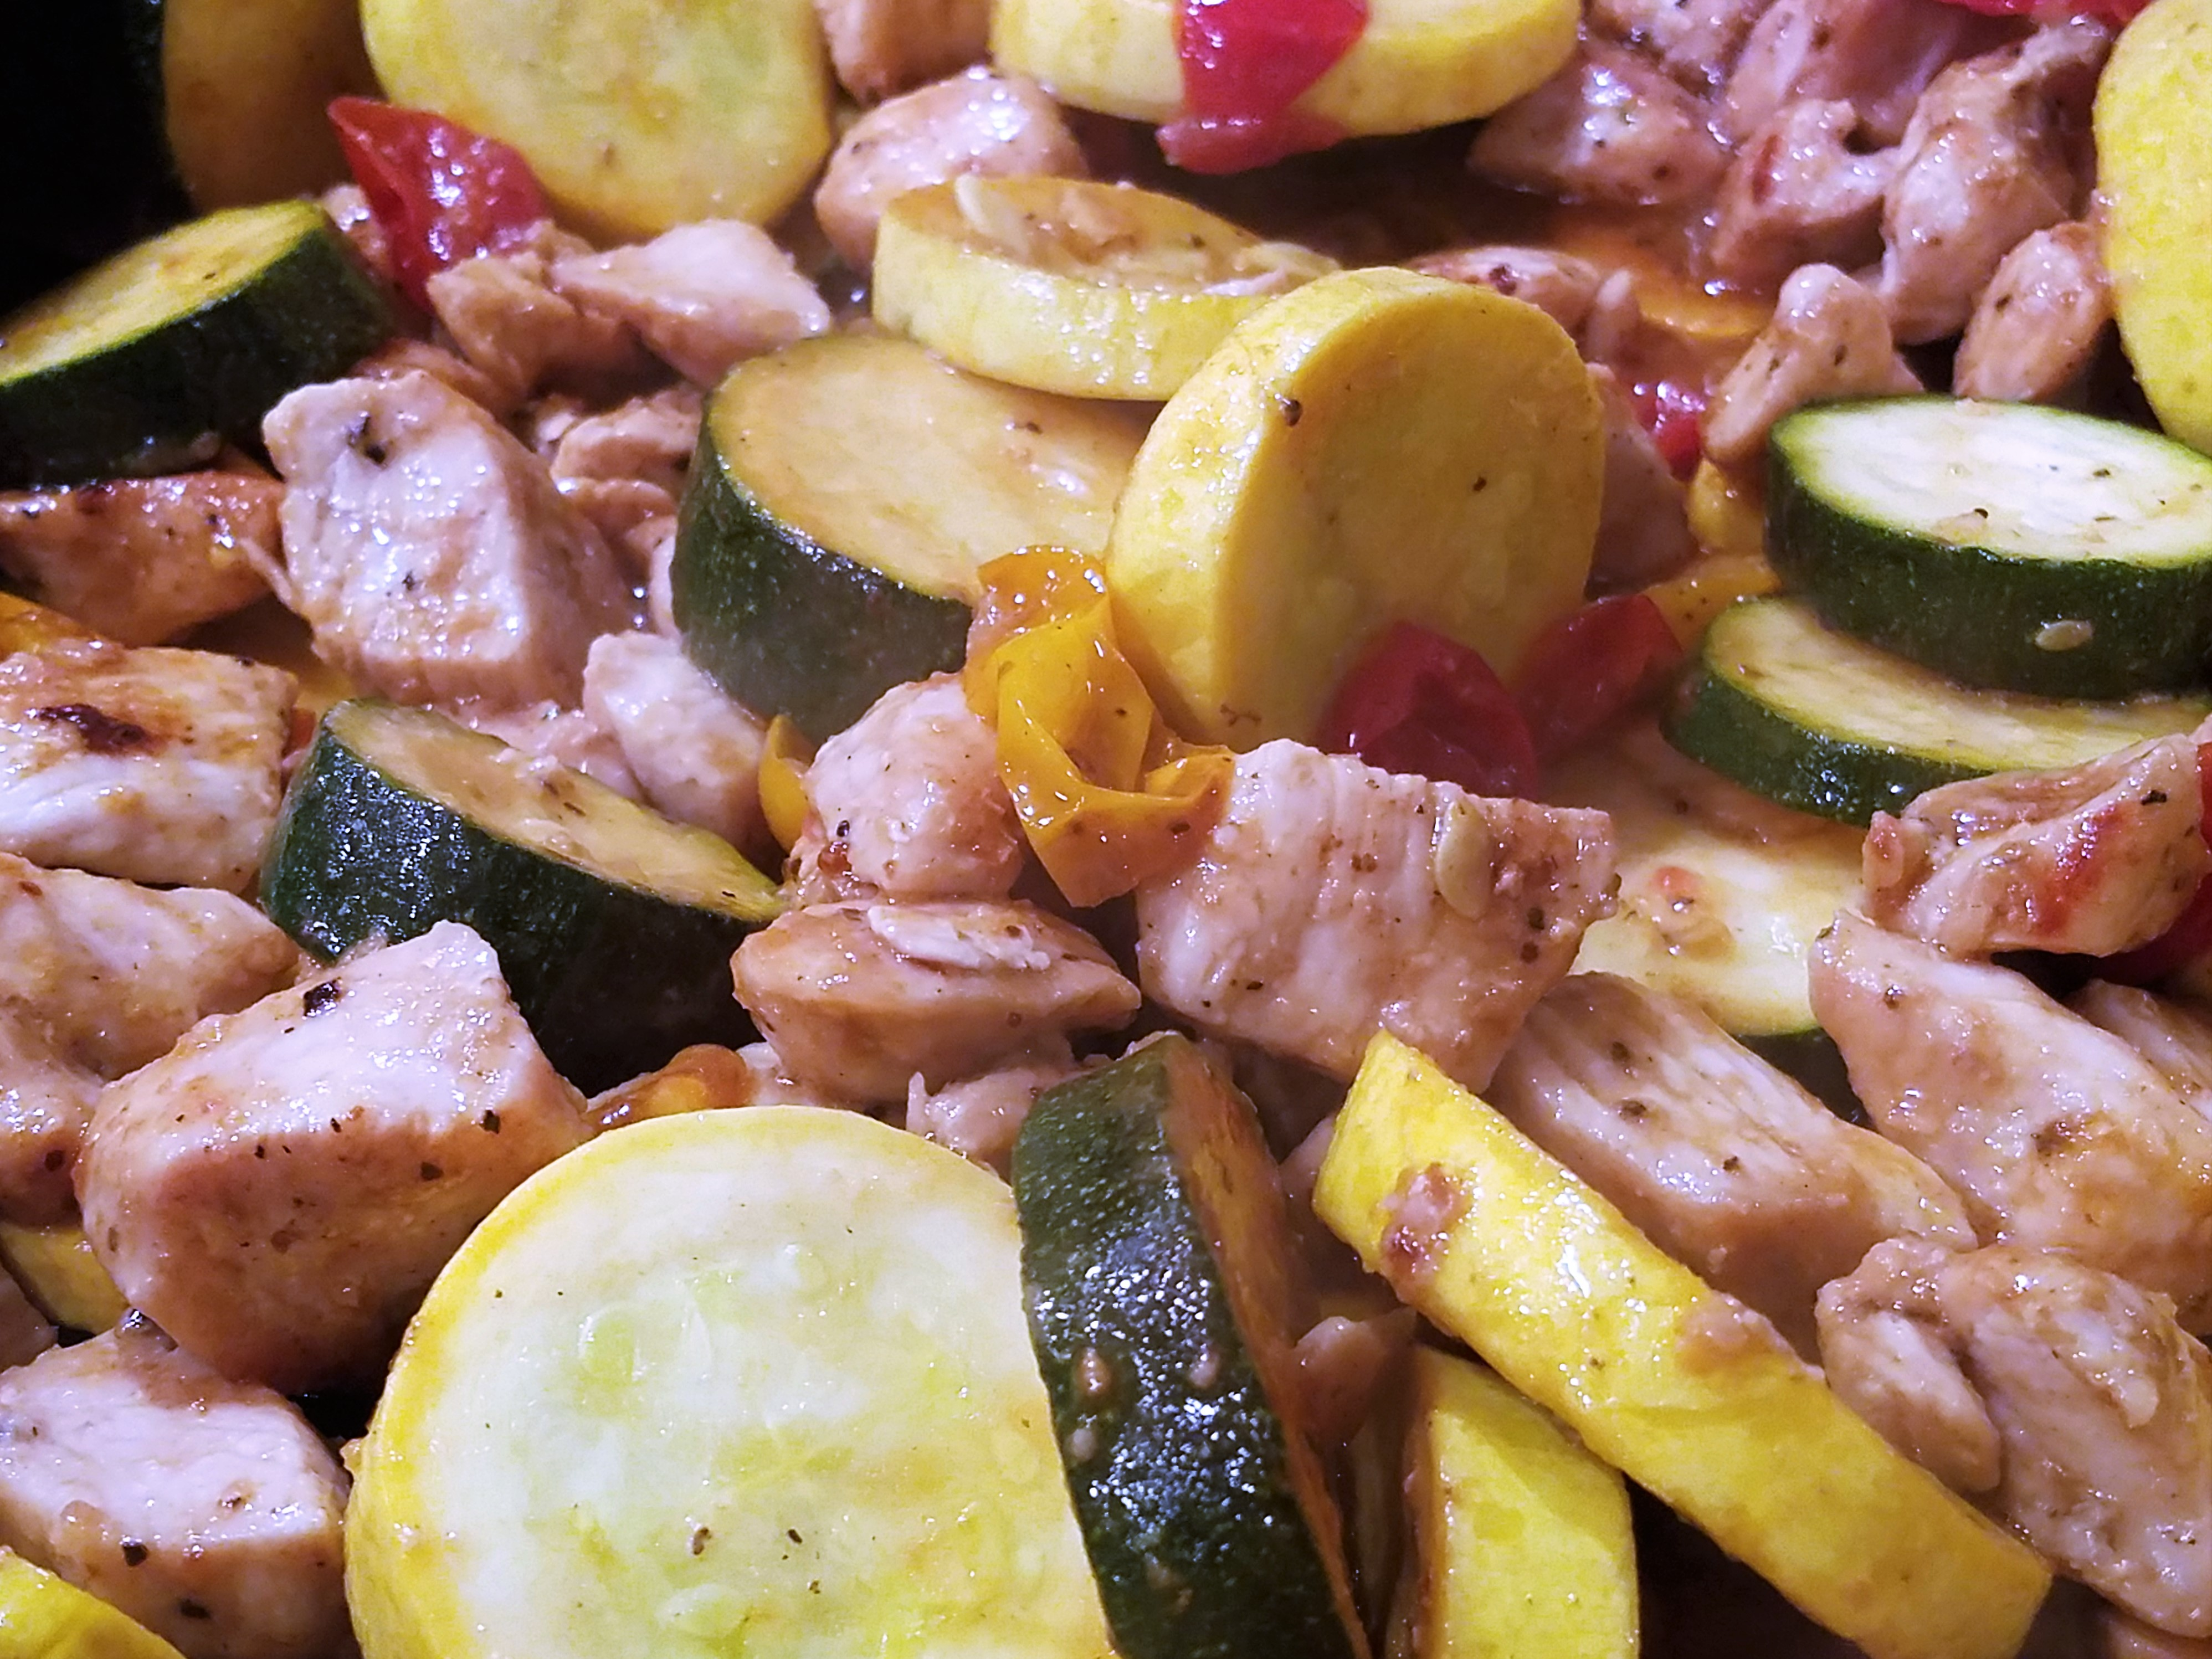 Easy Balsamic Chicken Recipe with winter squash & zucchini - One Skillet - Under 30 minutes - Family meal